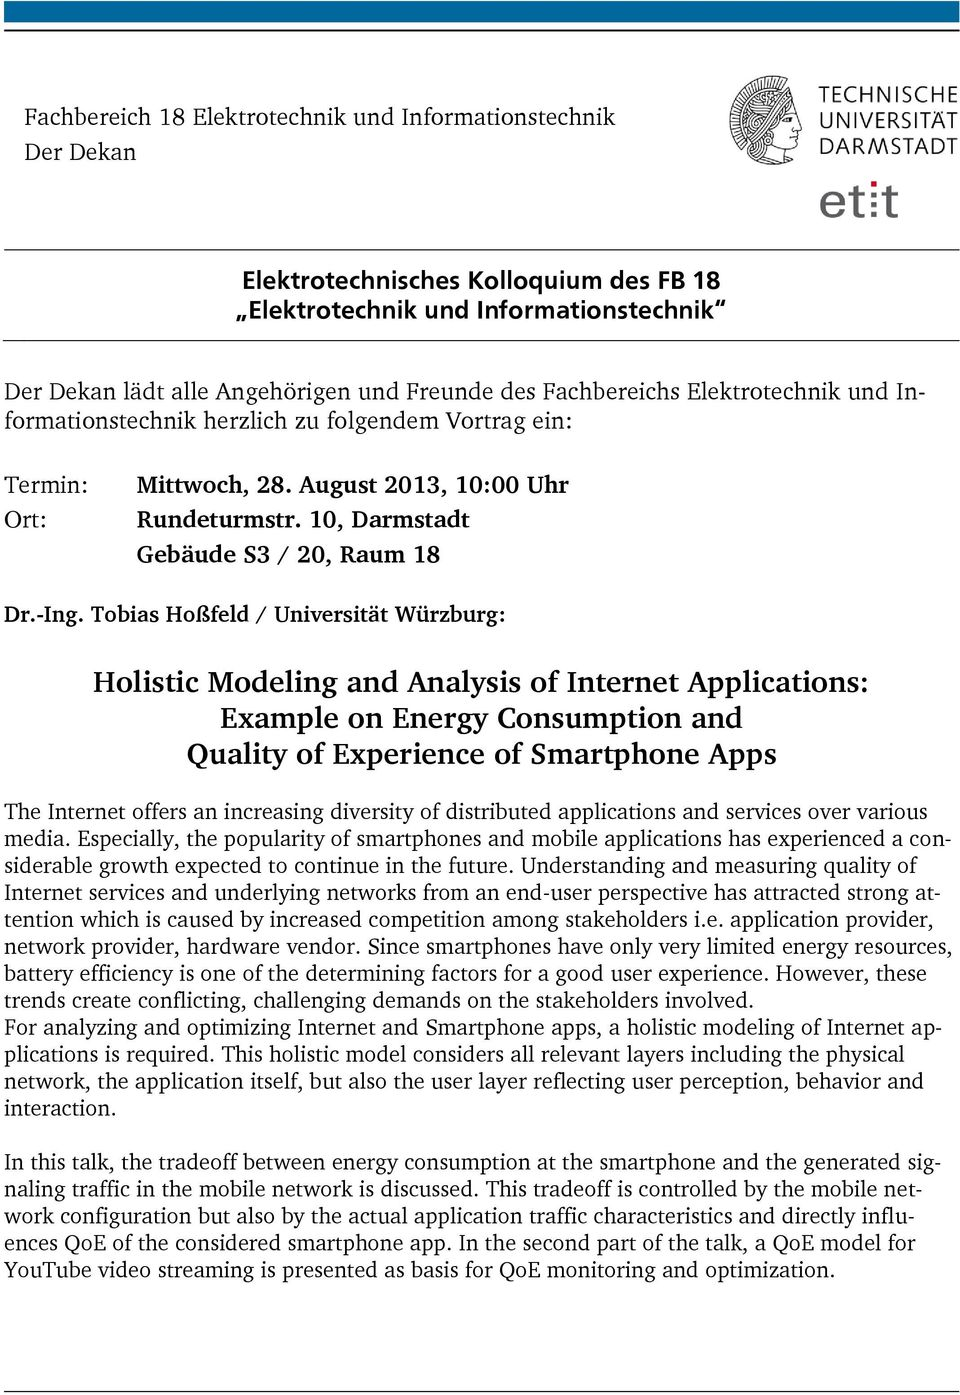 Tobias Hoßfeld / Universität Würzburg: Holistic Modeling and Analysis of Internet Applications: Example on Energy Consumption and Quality of Experience of Smartphone Apps The Internet offers an